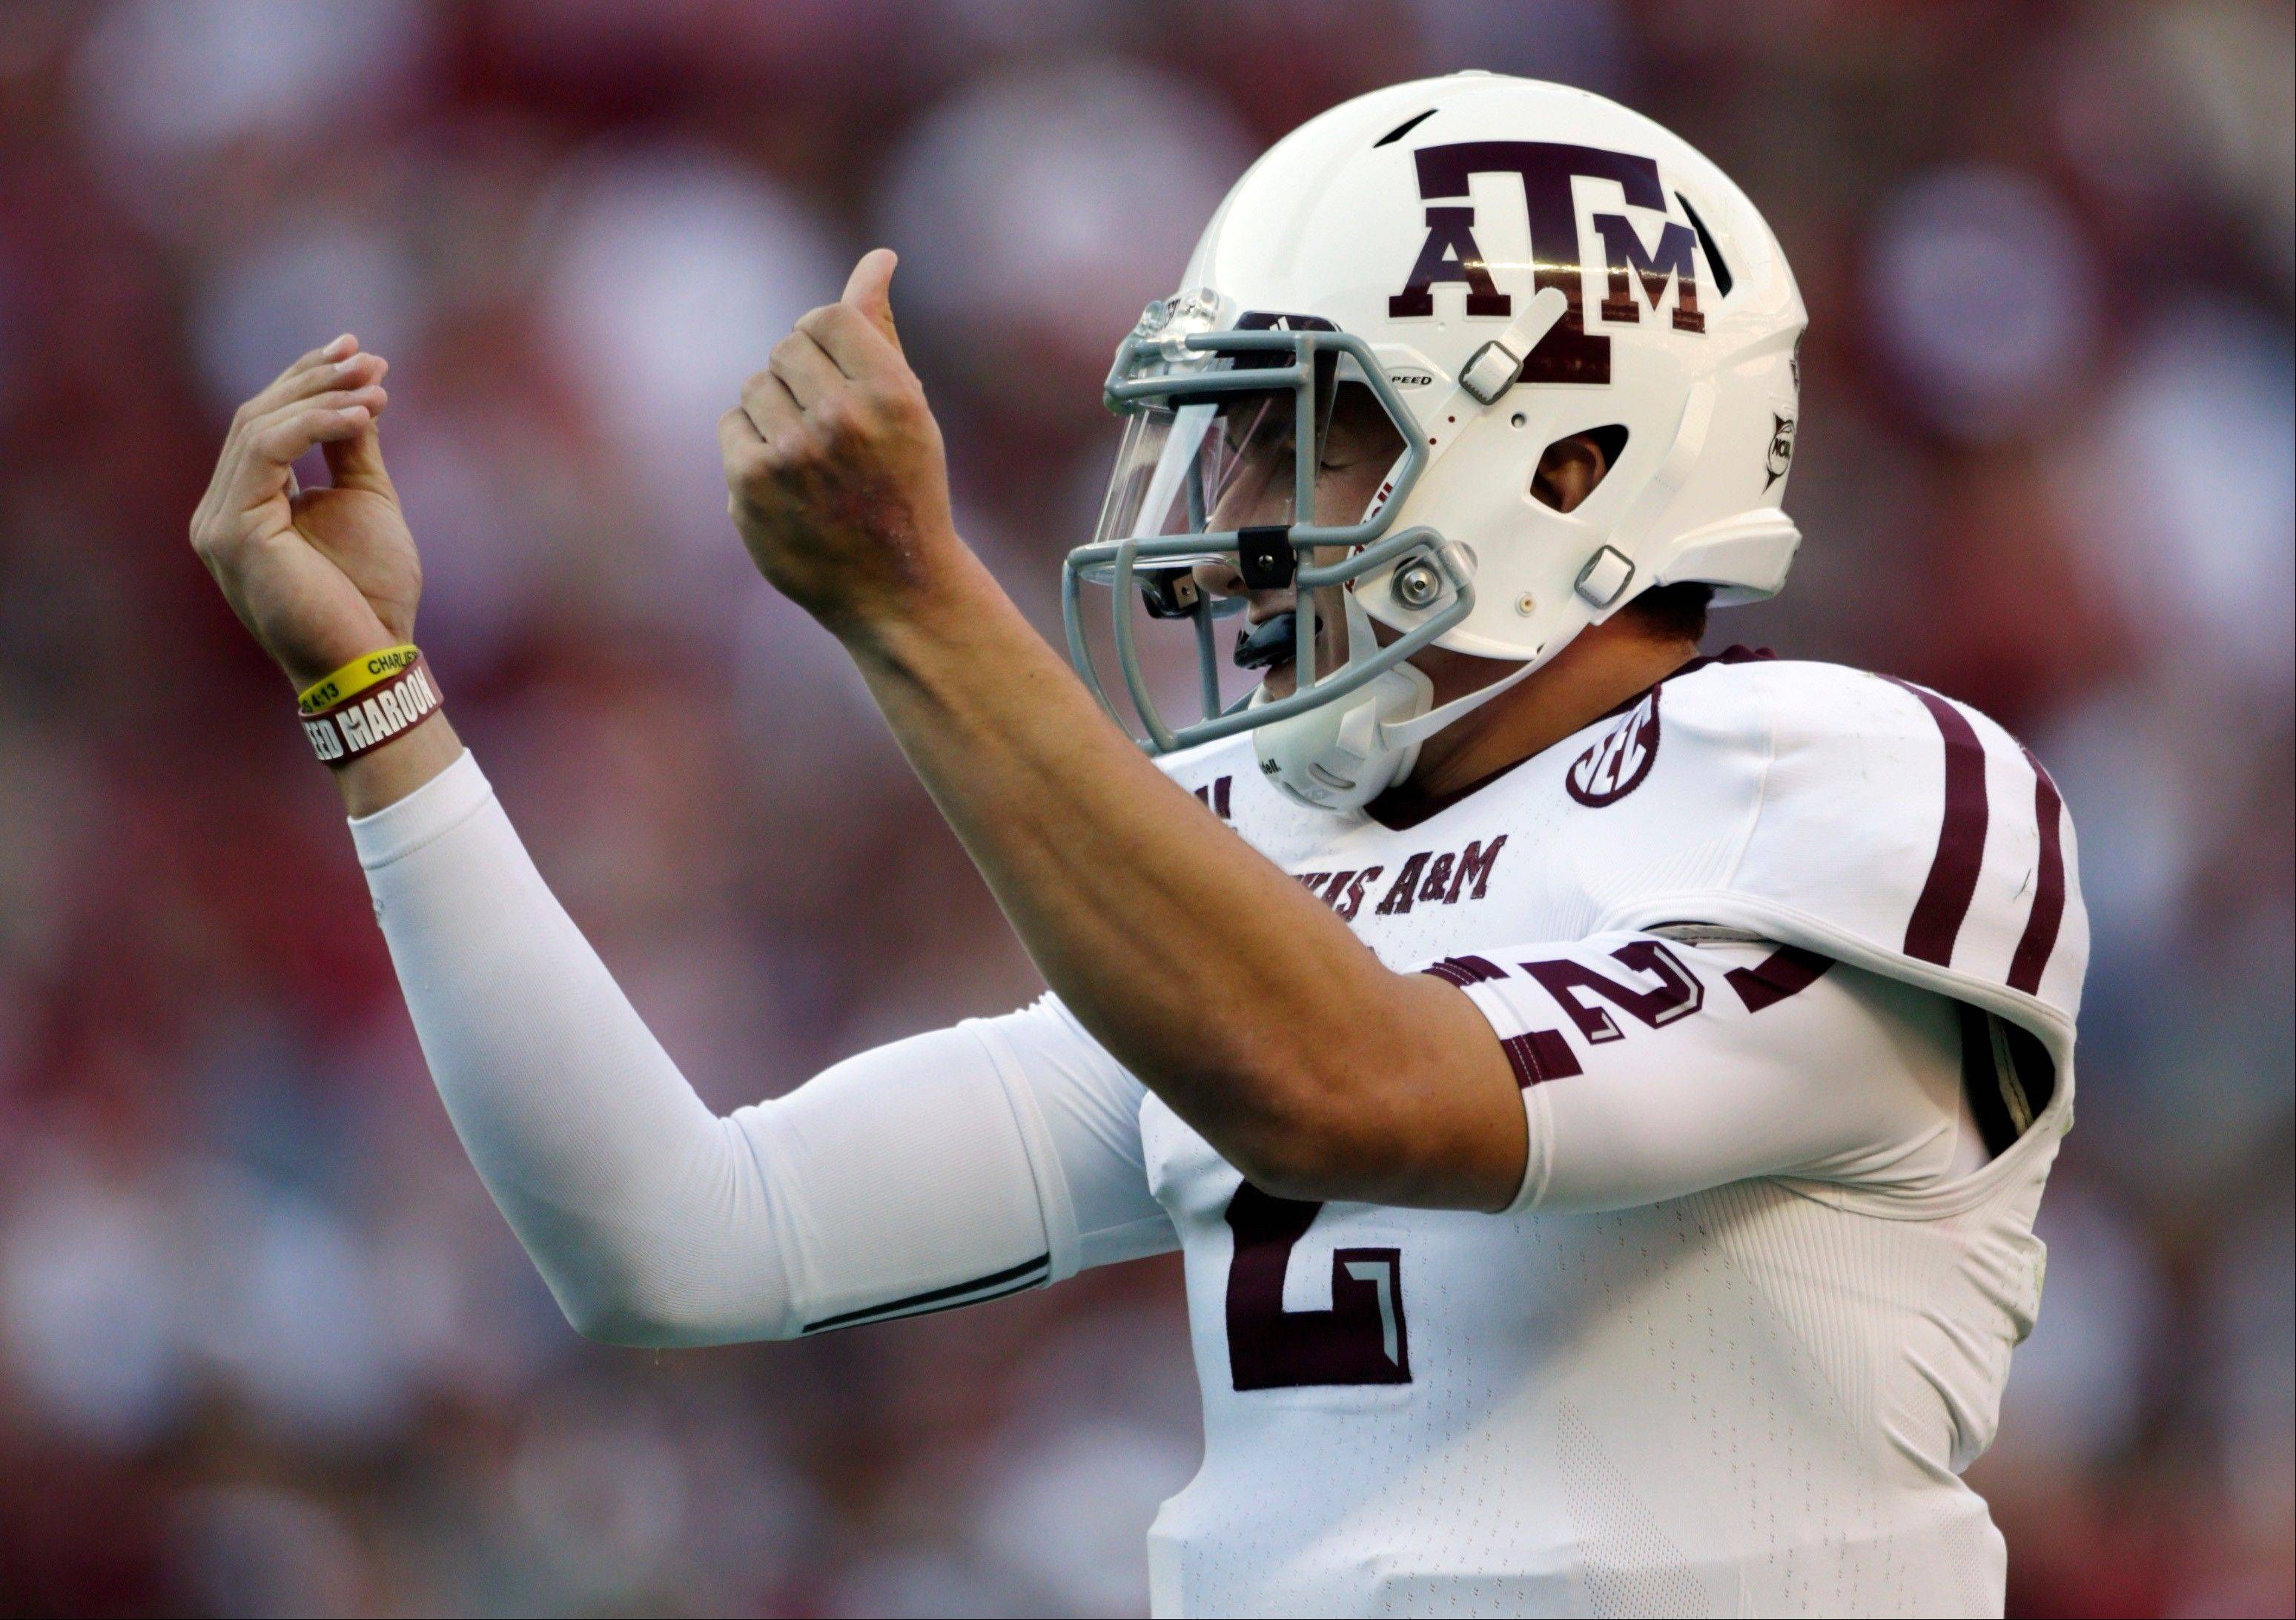 Texas A&M quarterback Johnny Manziel reacts after the Aggies scored their third touchdown of the first quarter against Alabama Saturday at Bryant-Denny Stadium in Tuscaloosa, Ala.